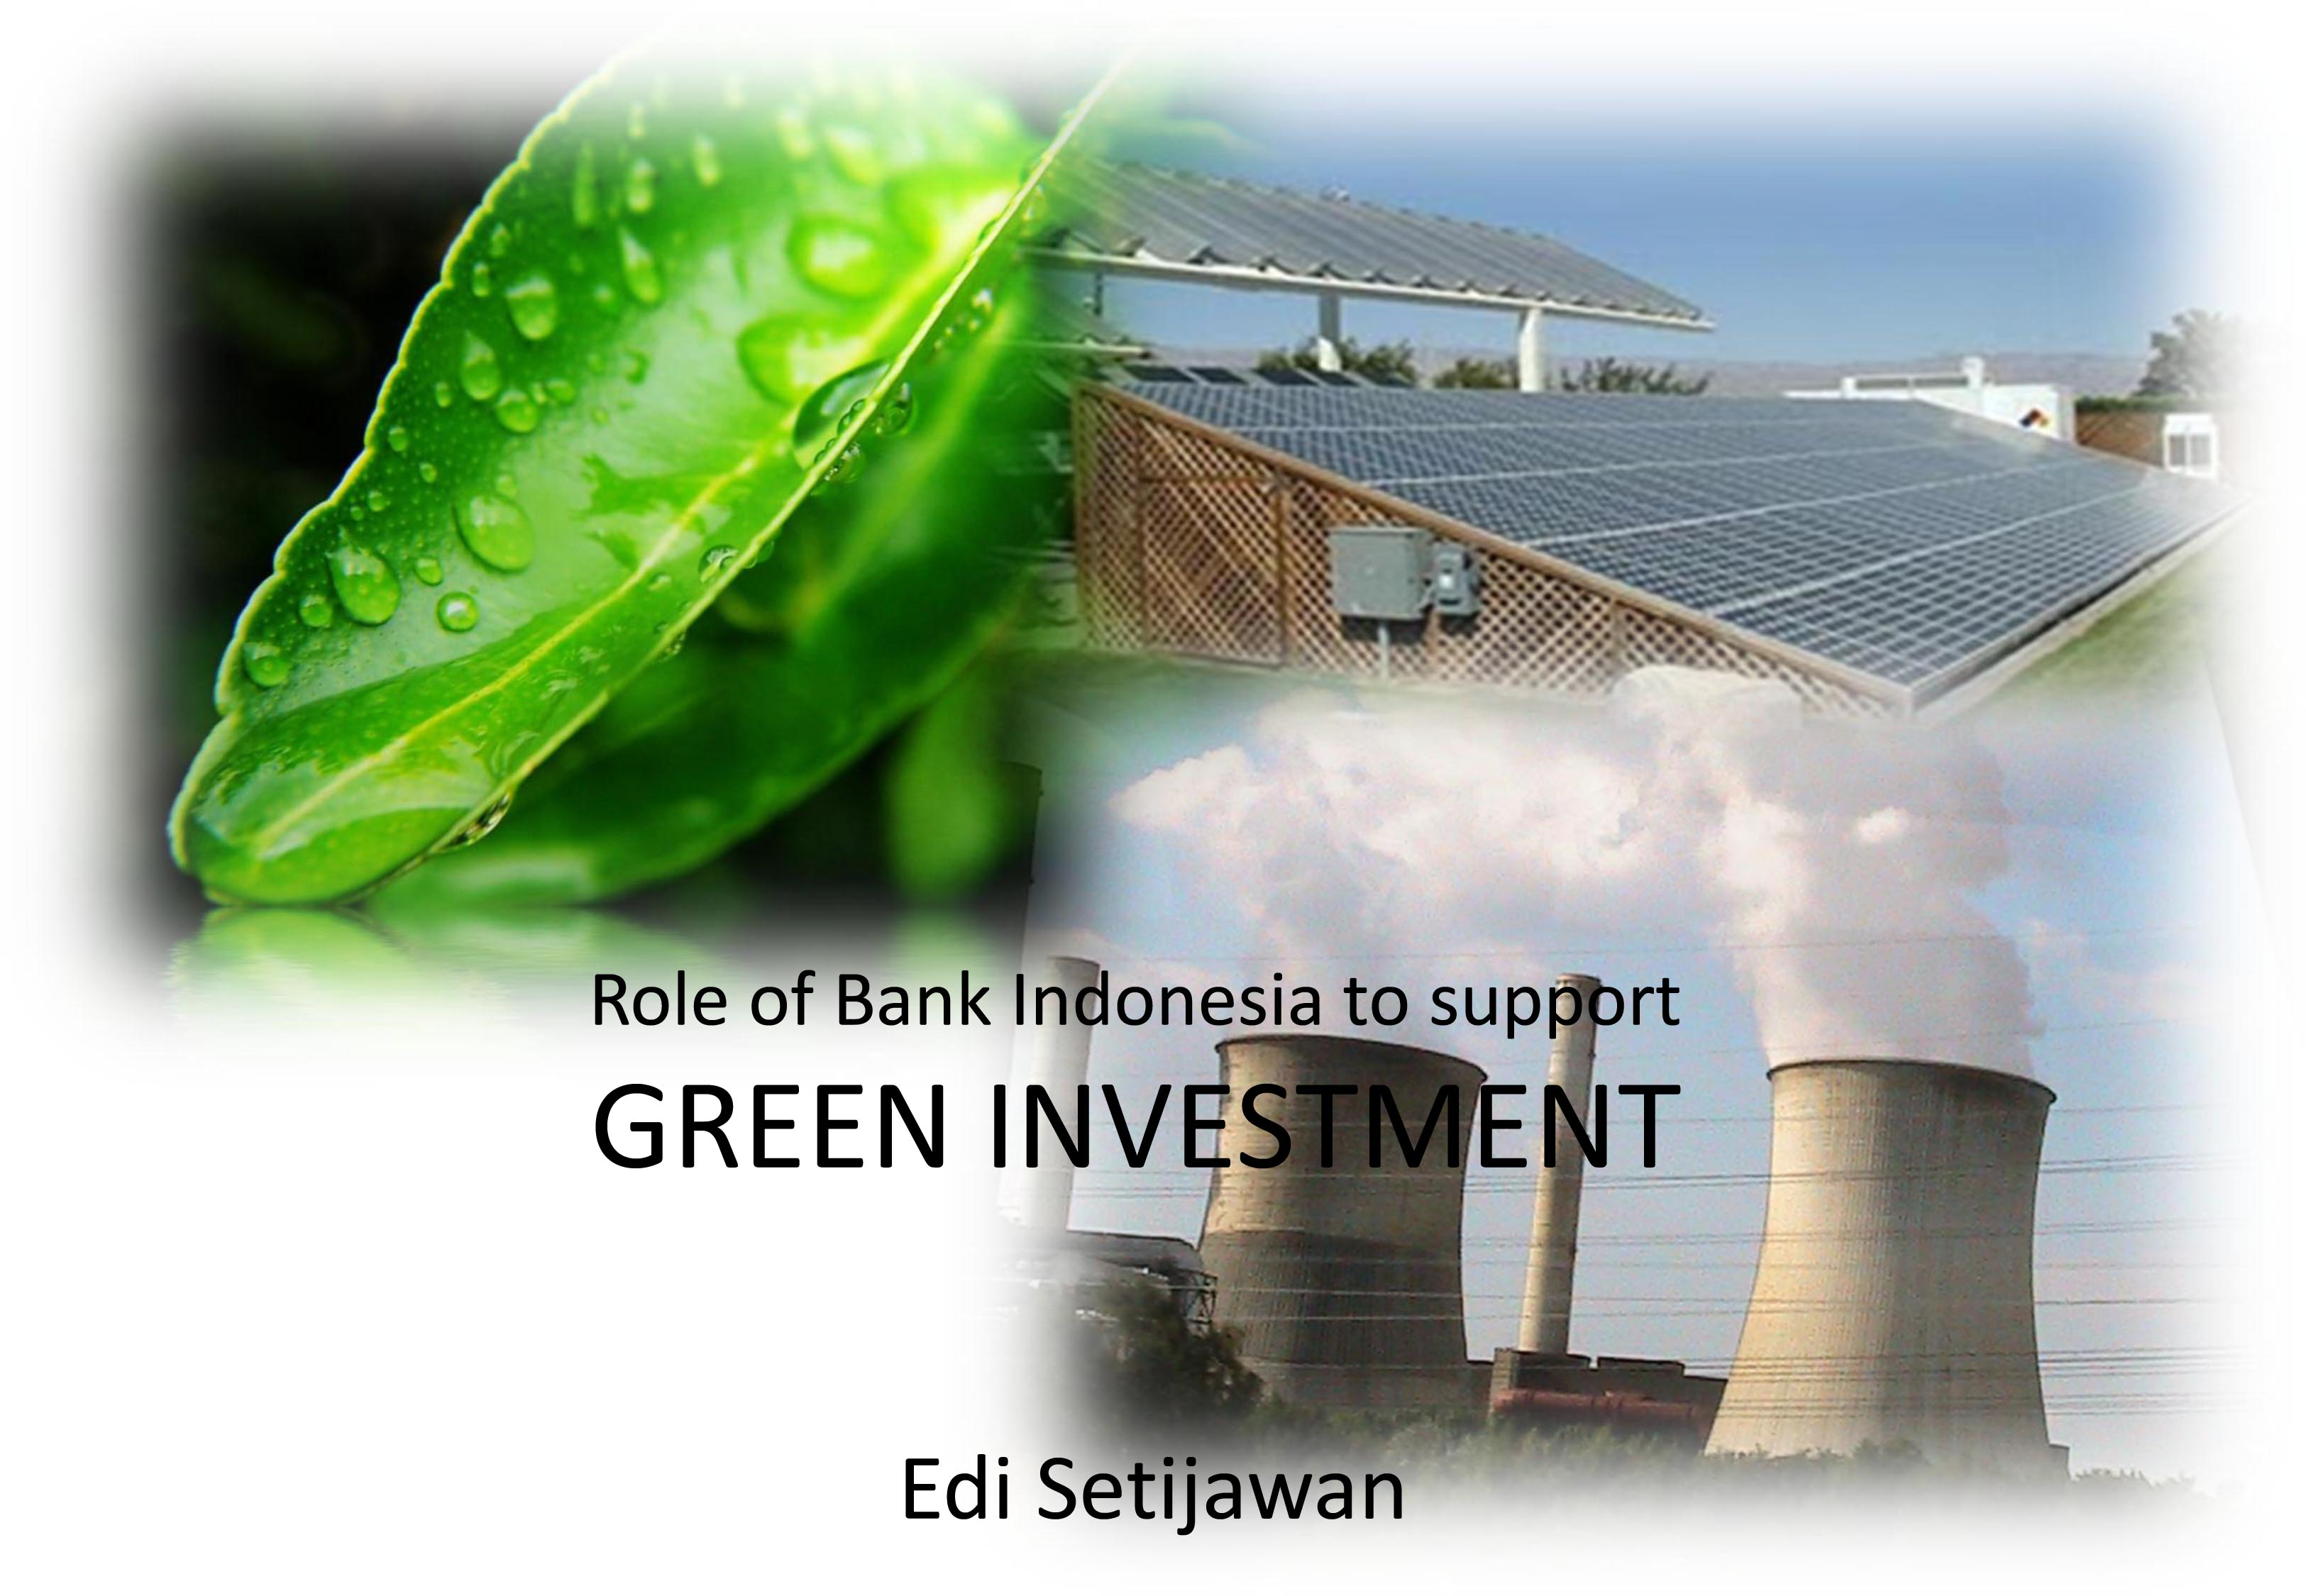 Role of Bank Indonesia to support GREEN INVESTMENT